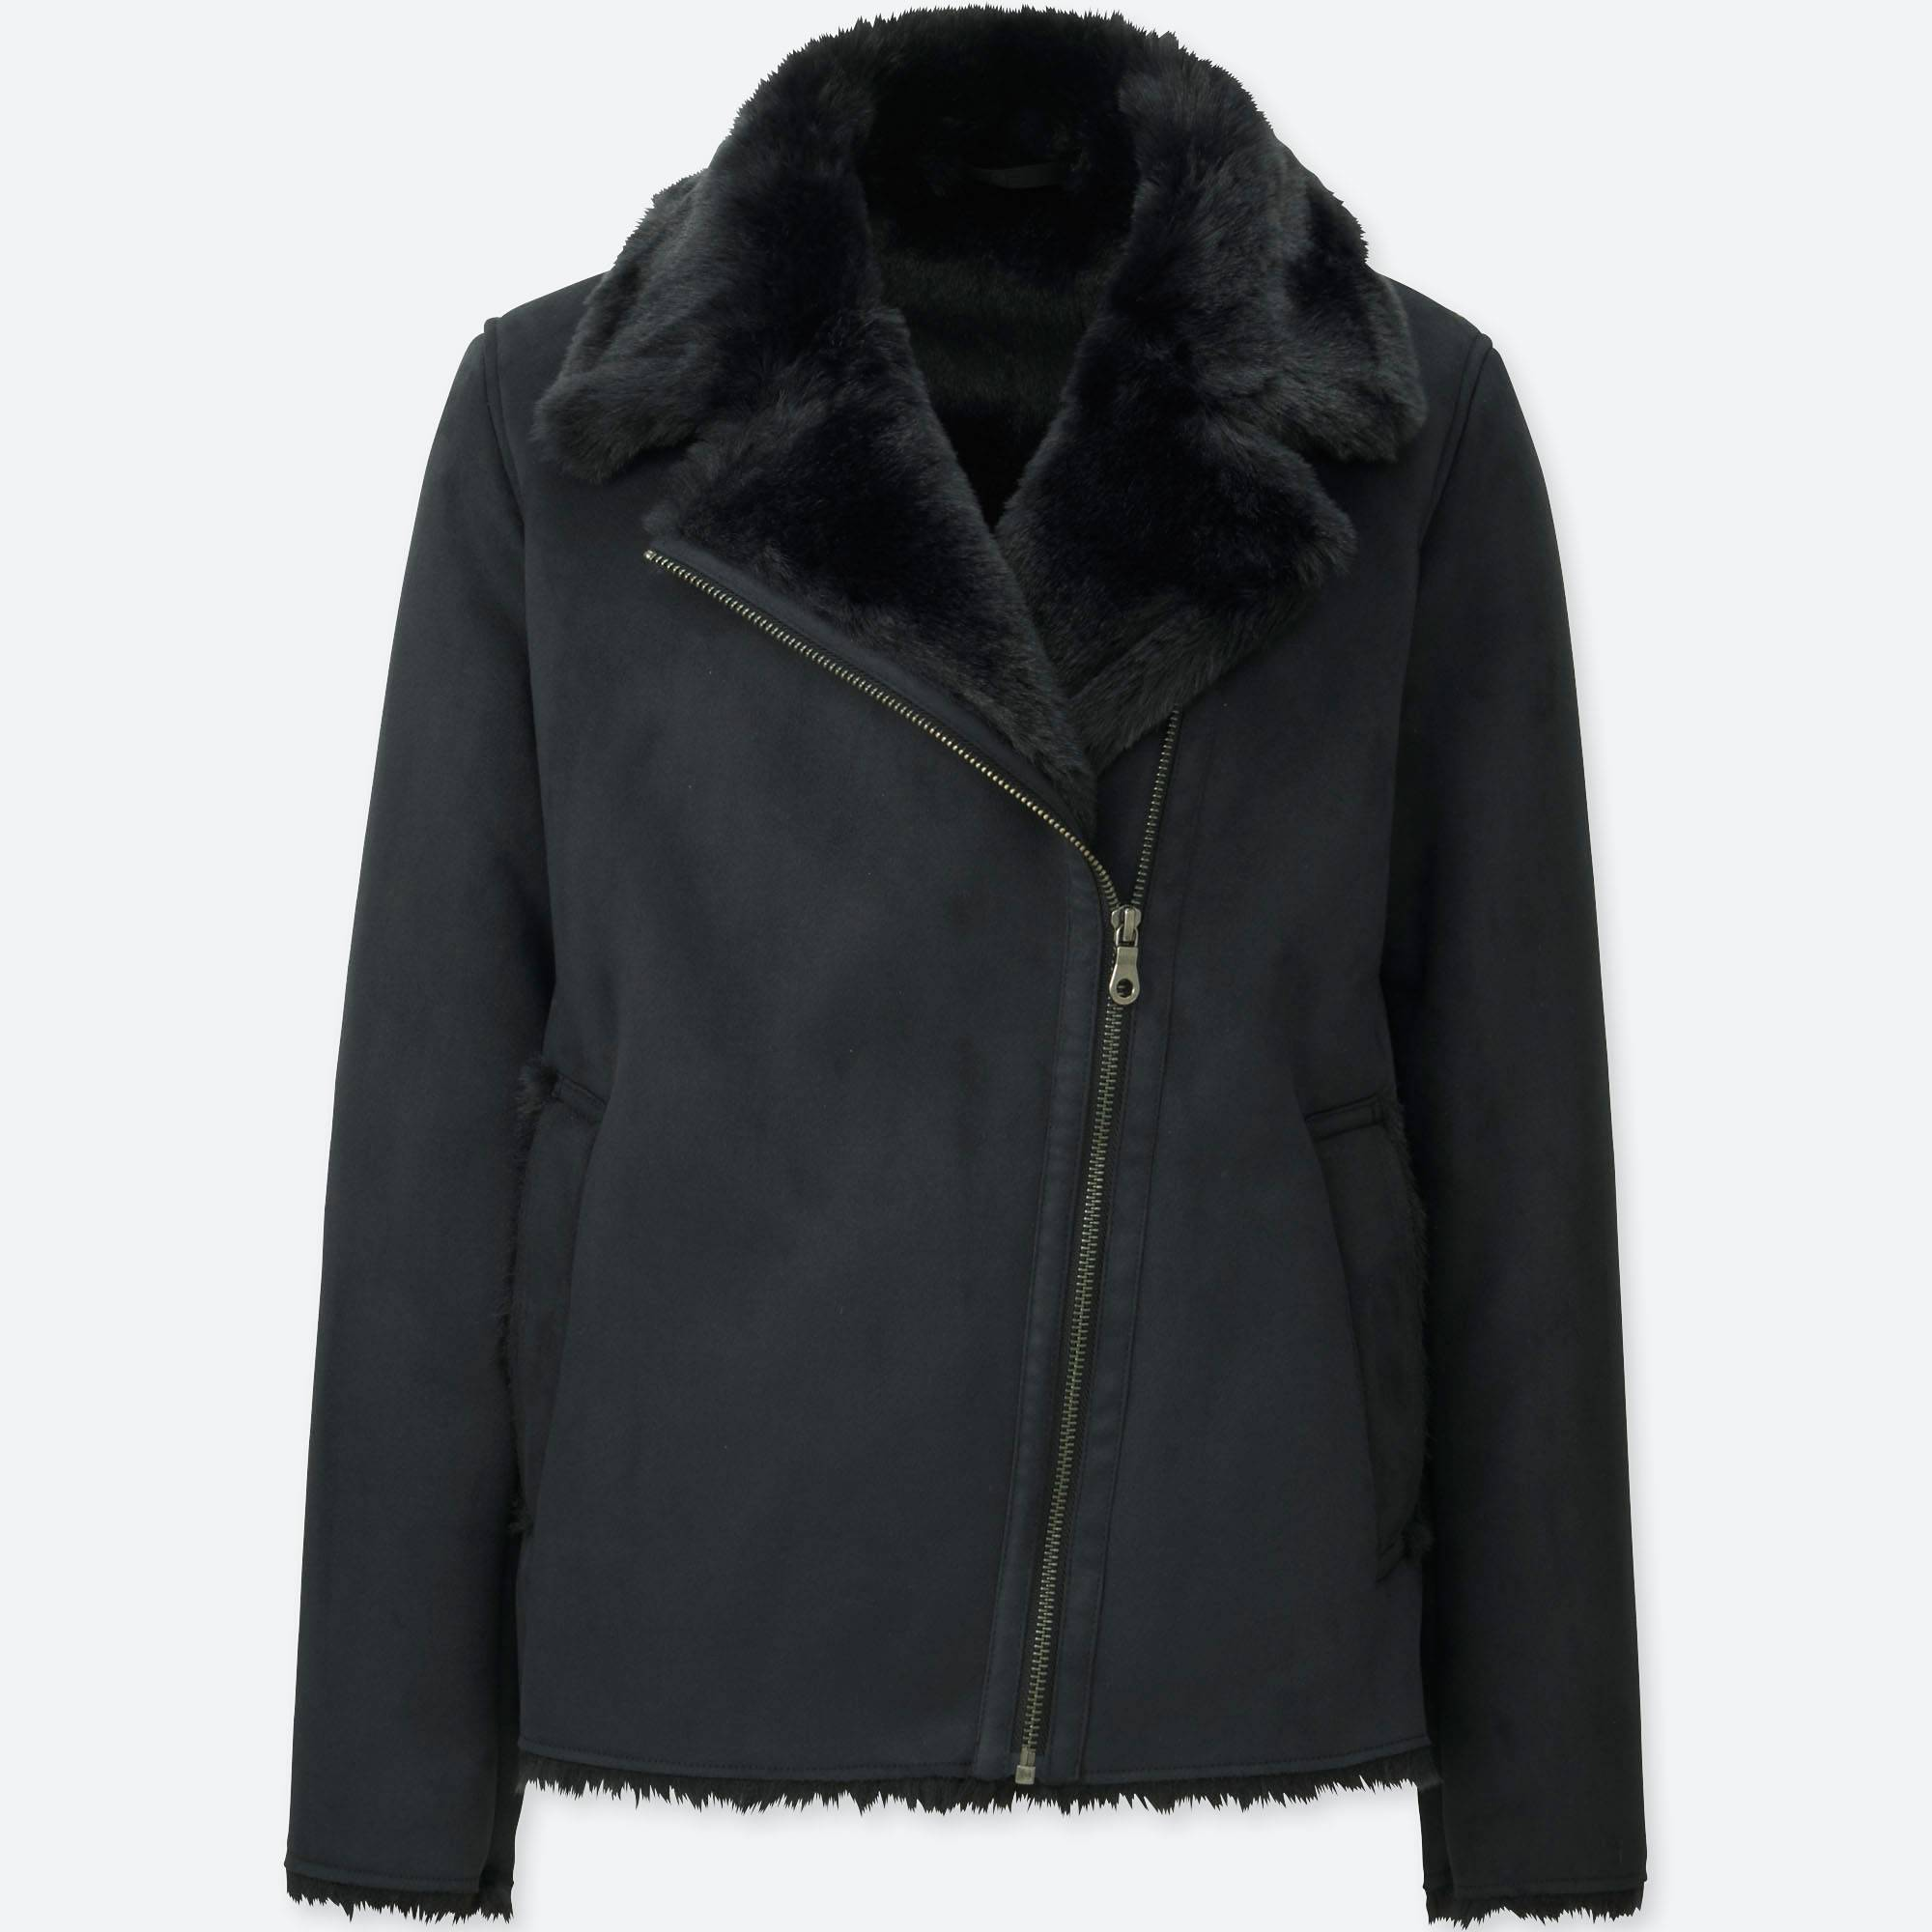 WOMEN FAUX SHEARLING JACKET | UNIQLO US